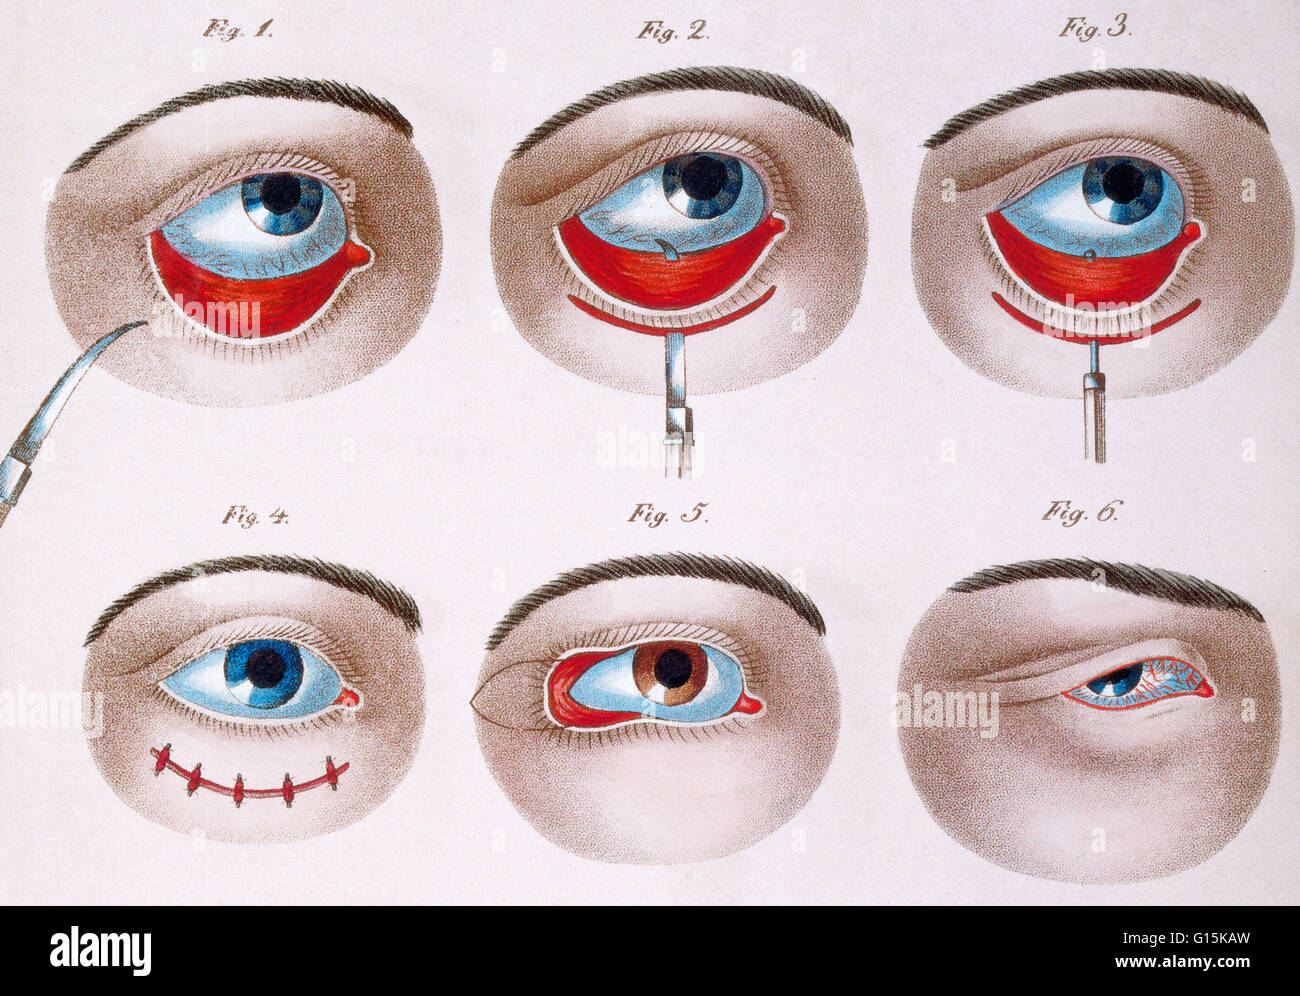 Illustration showing the surgical procedure to correct a lazy lower eyelid (ptosis), c. 1830. Ptosis is a drooping - Stock Image